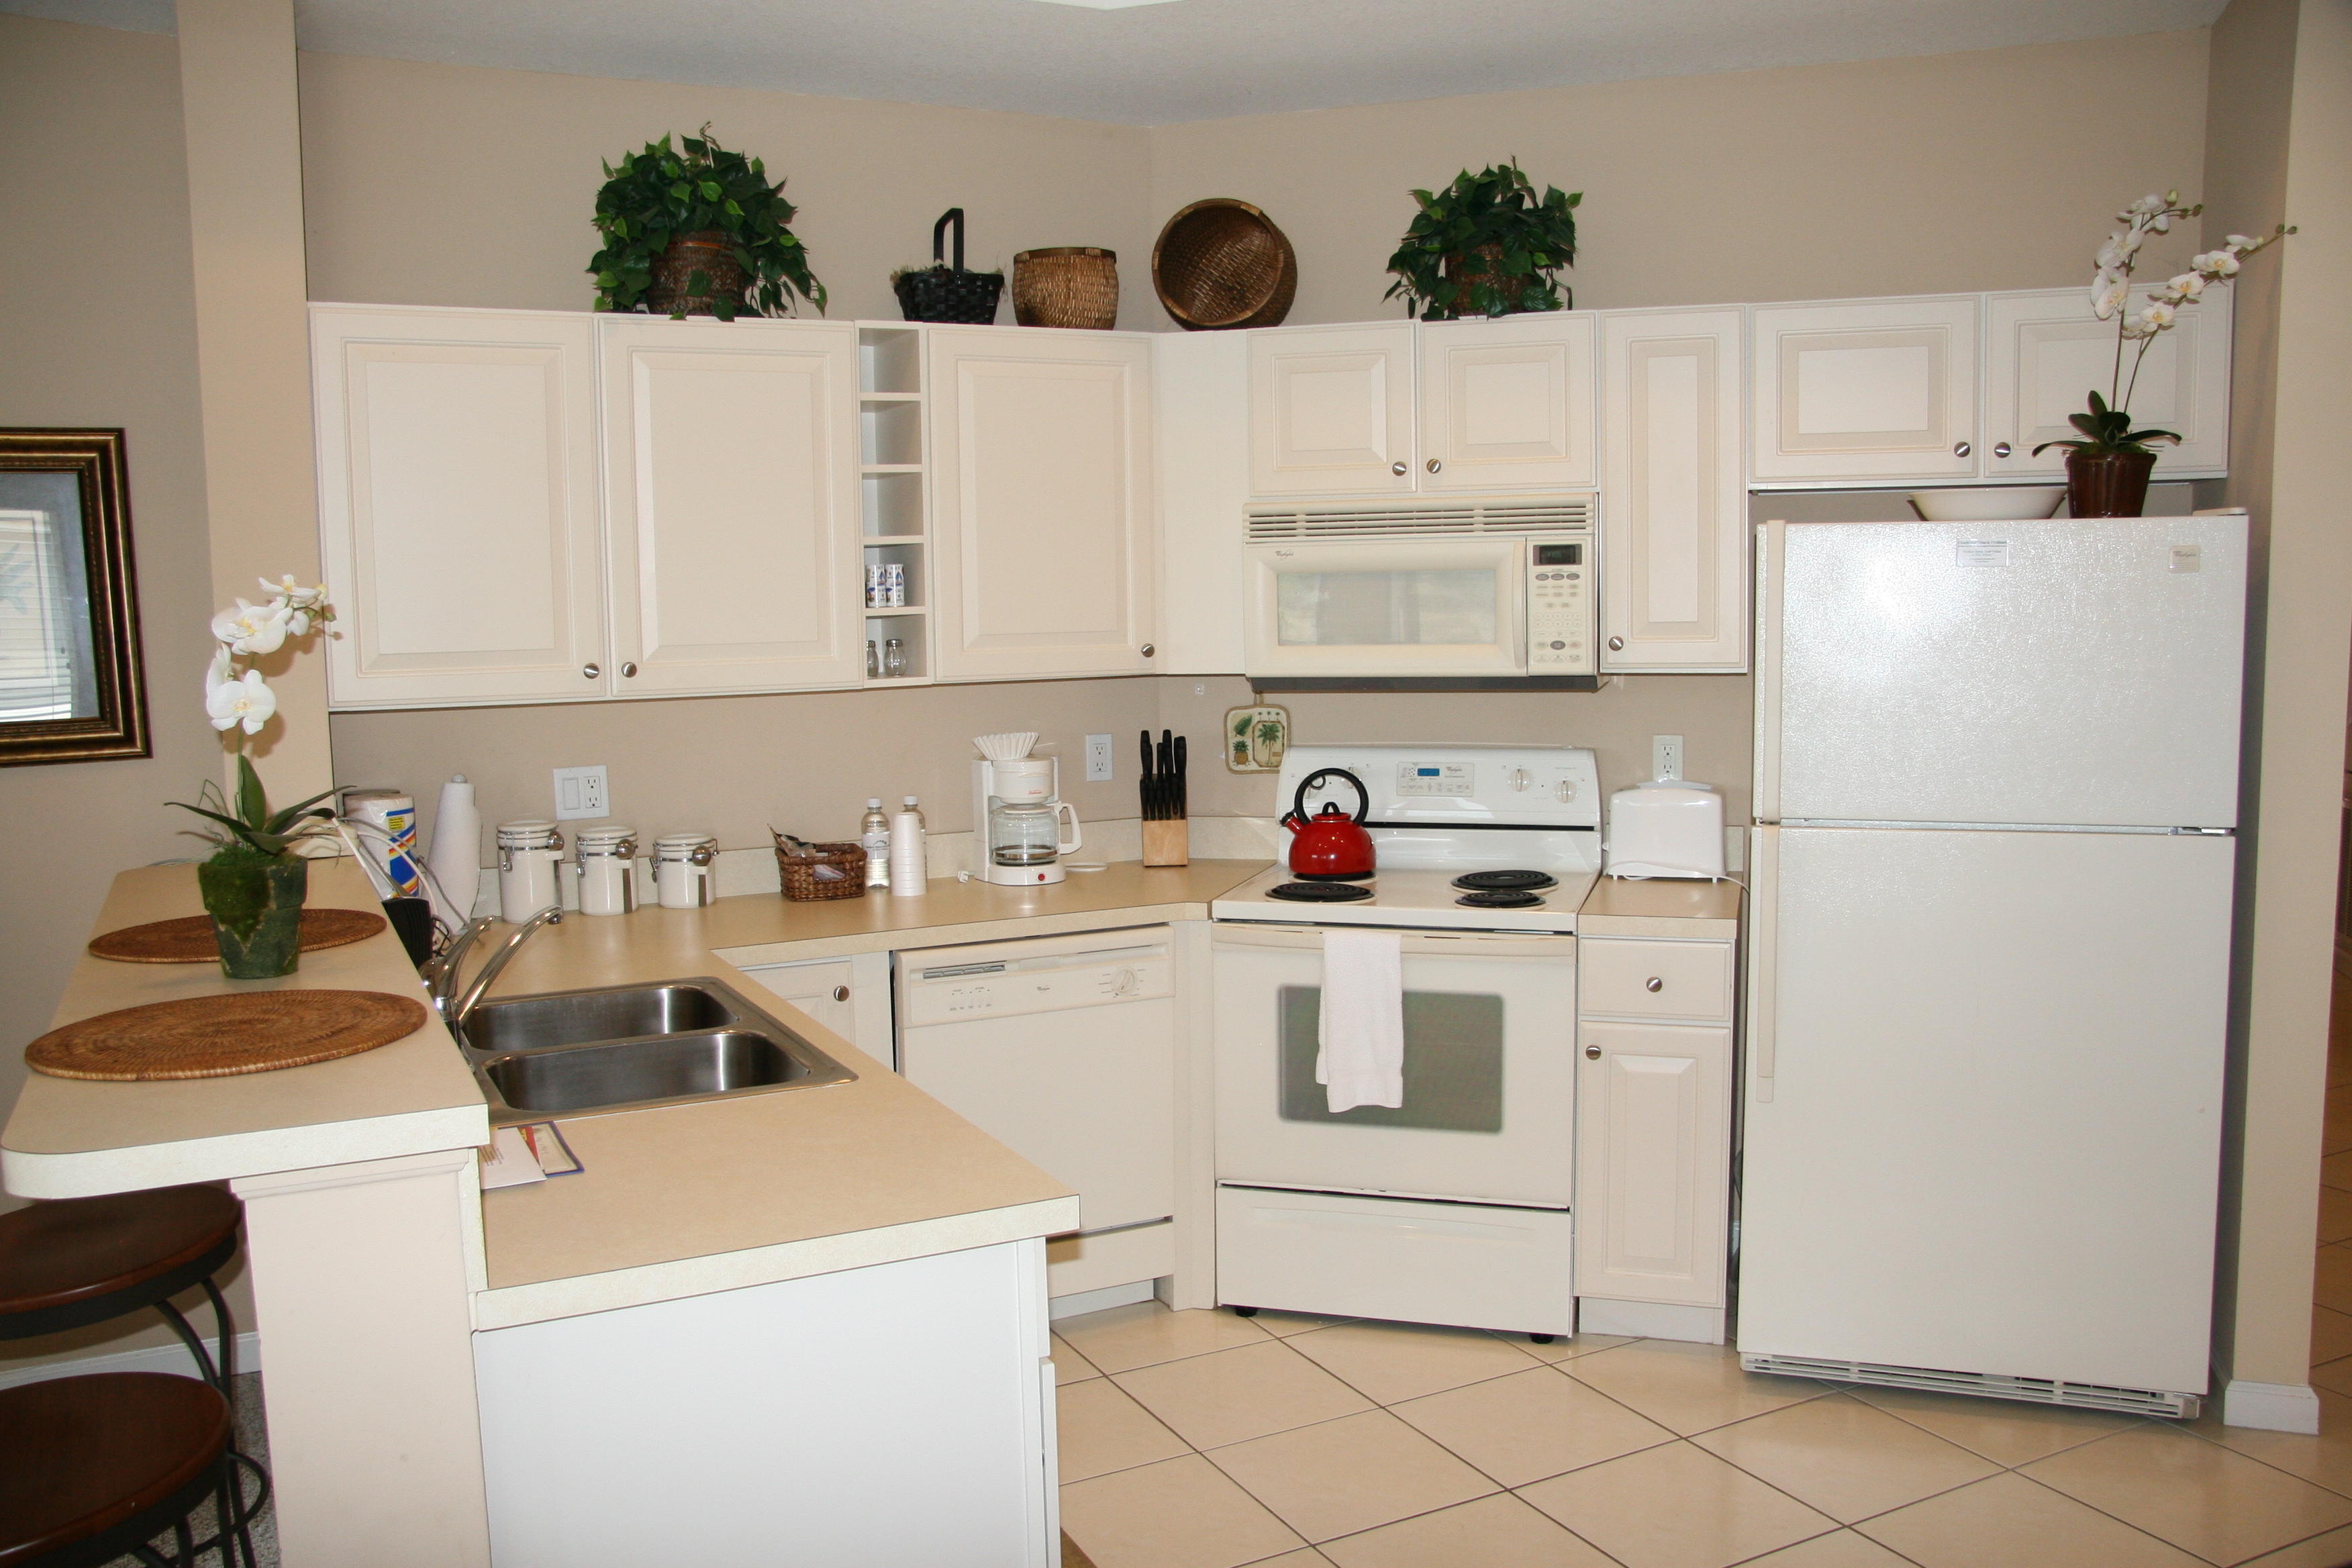 Two Bedroom Vacation Rentals in Port St Lucie| Perfect Drive